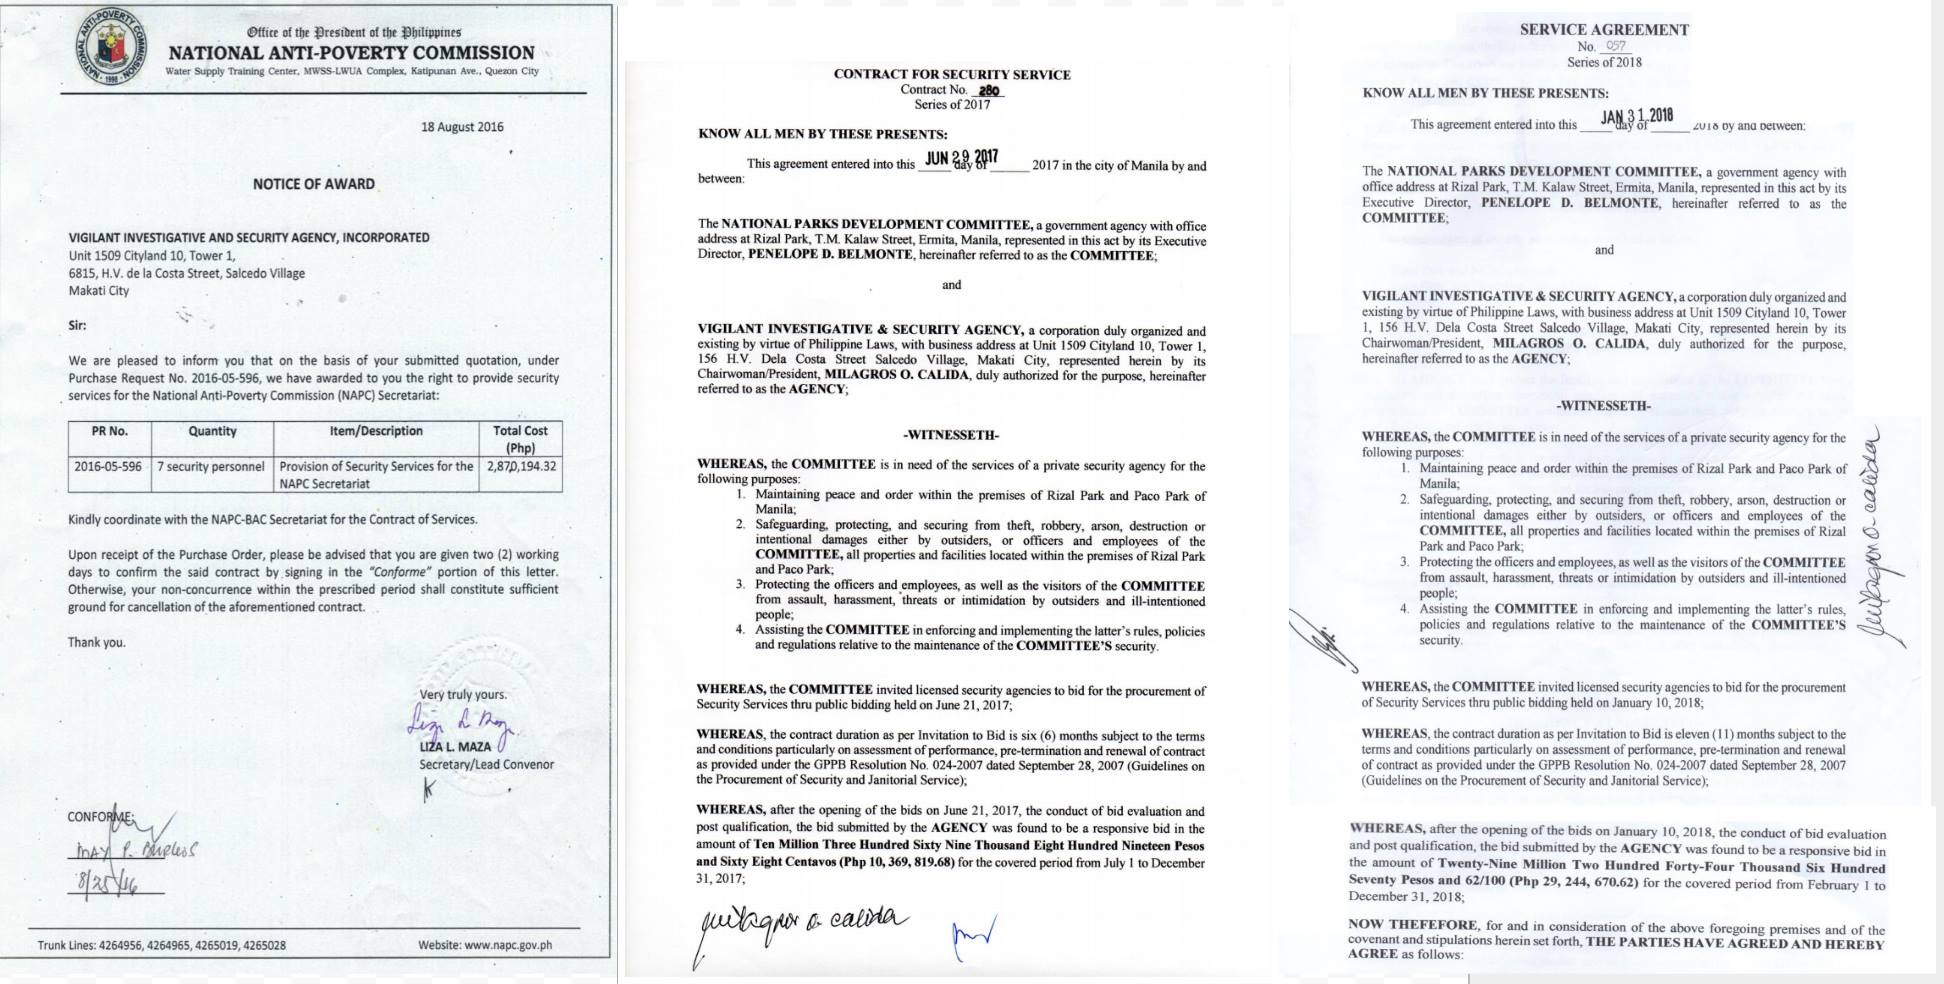 CONTRACTS. Documents show the notice of award and contracts given to Vigilant by the National Anti-Poverty Commission and the National Parks Development Committee.